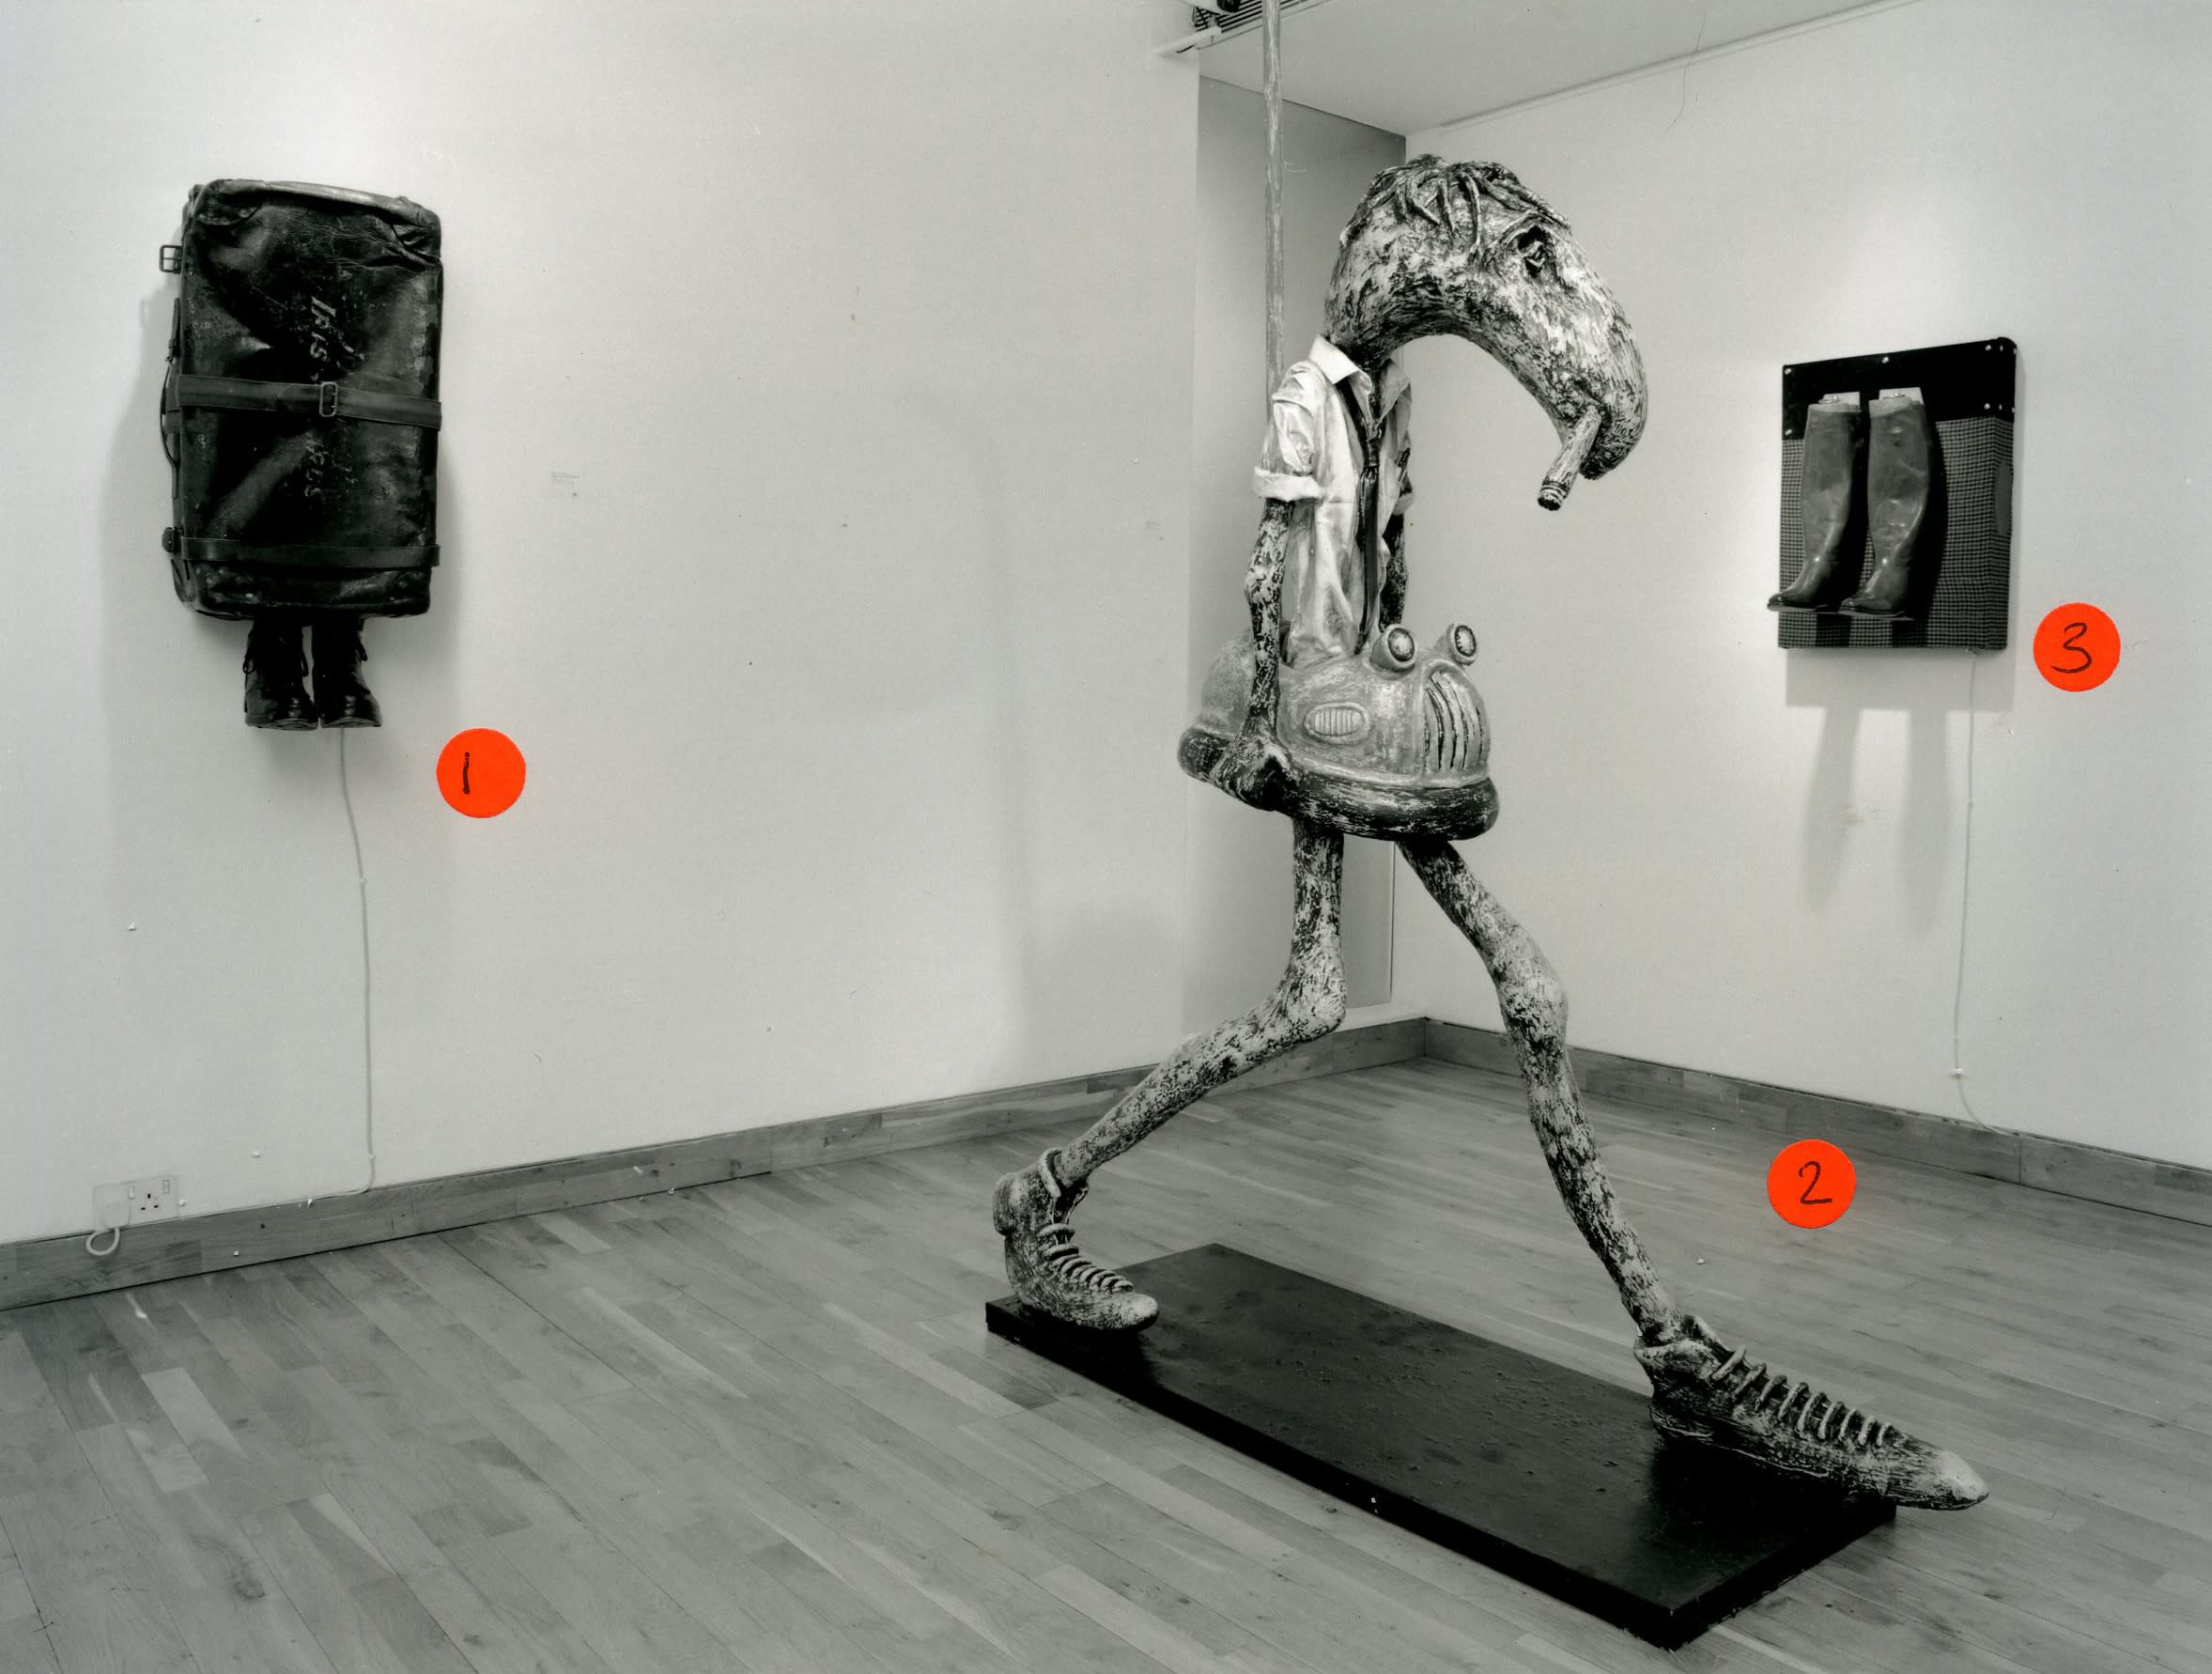 """<span class=""""link fancybox-details-link""""><a href=""""/exhibitions/162/works/image_standalone712/"""">View Detail Page</a></span><p>PATRICK O'REILLY   THE BROKEN WING   25 FEB - 01 APR 1999   Installation View</p>"""